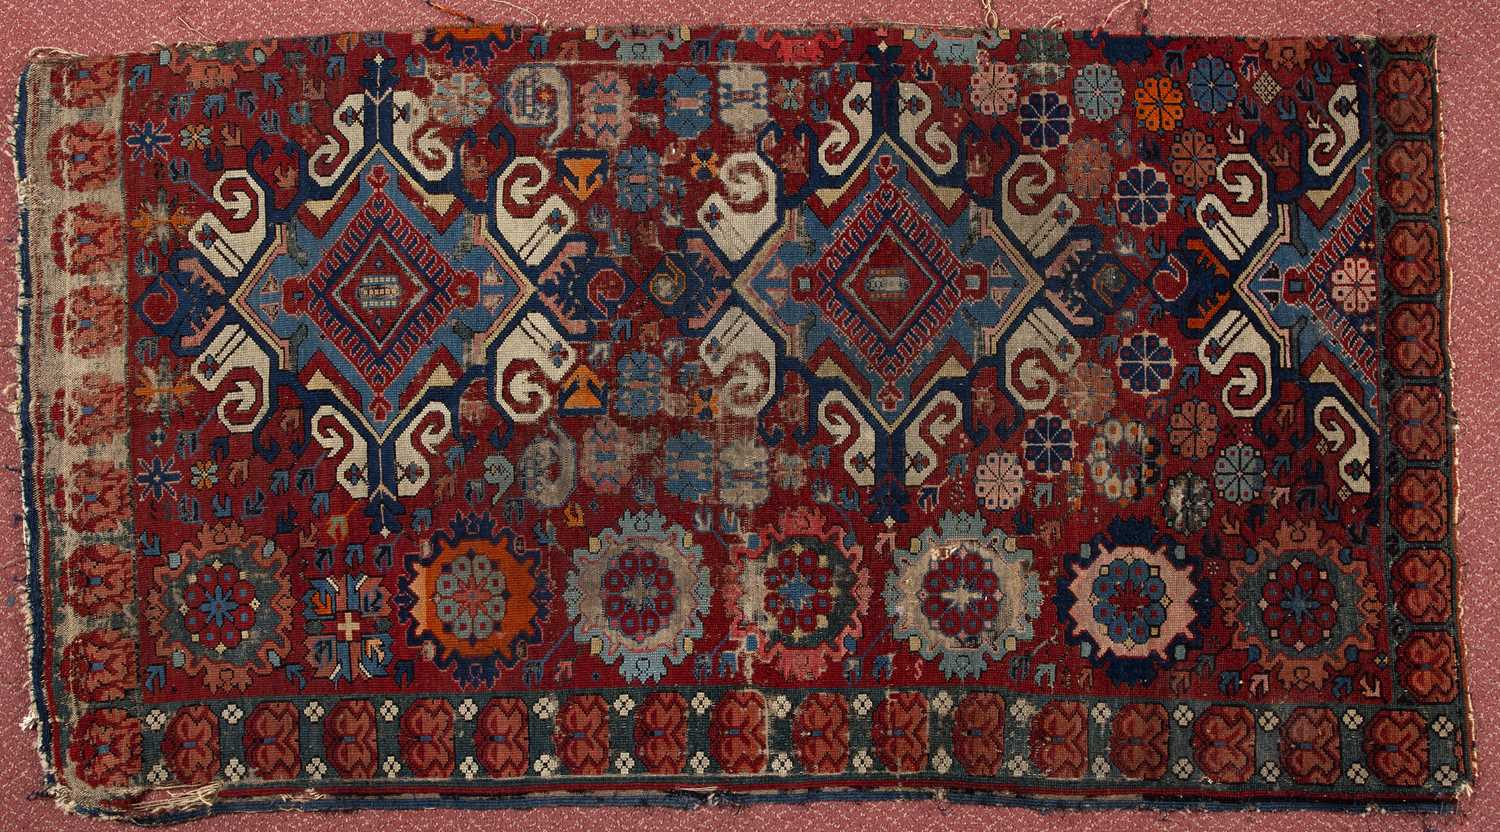 An antique Caucasian Seychor rug fragment with scrolled medallions on a red ground, 156 x 85cm